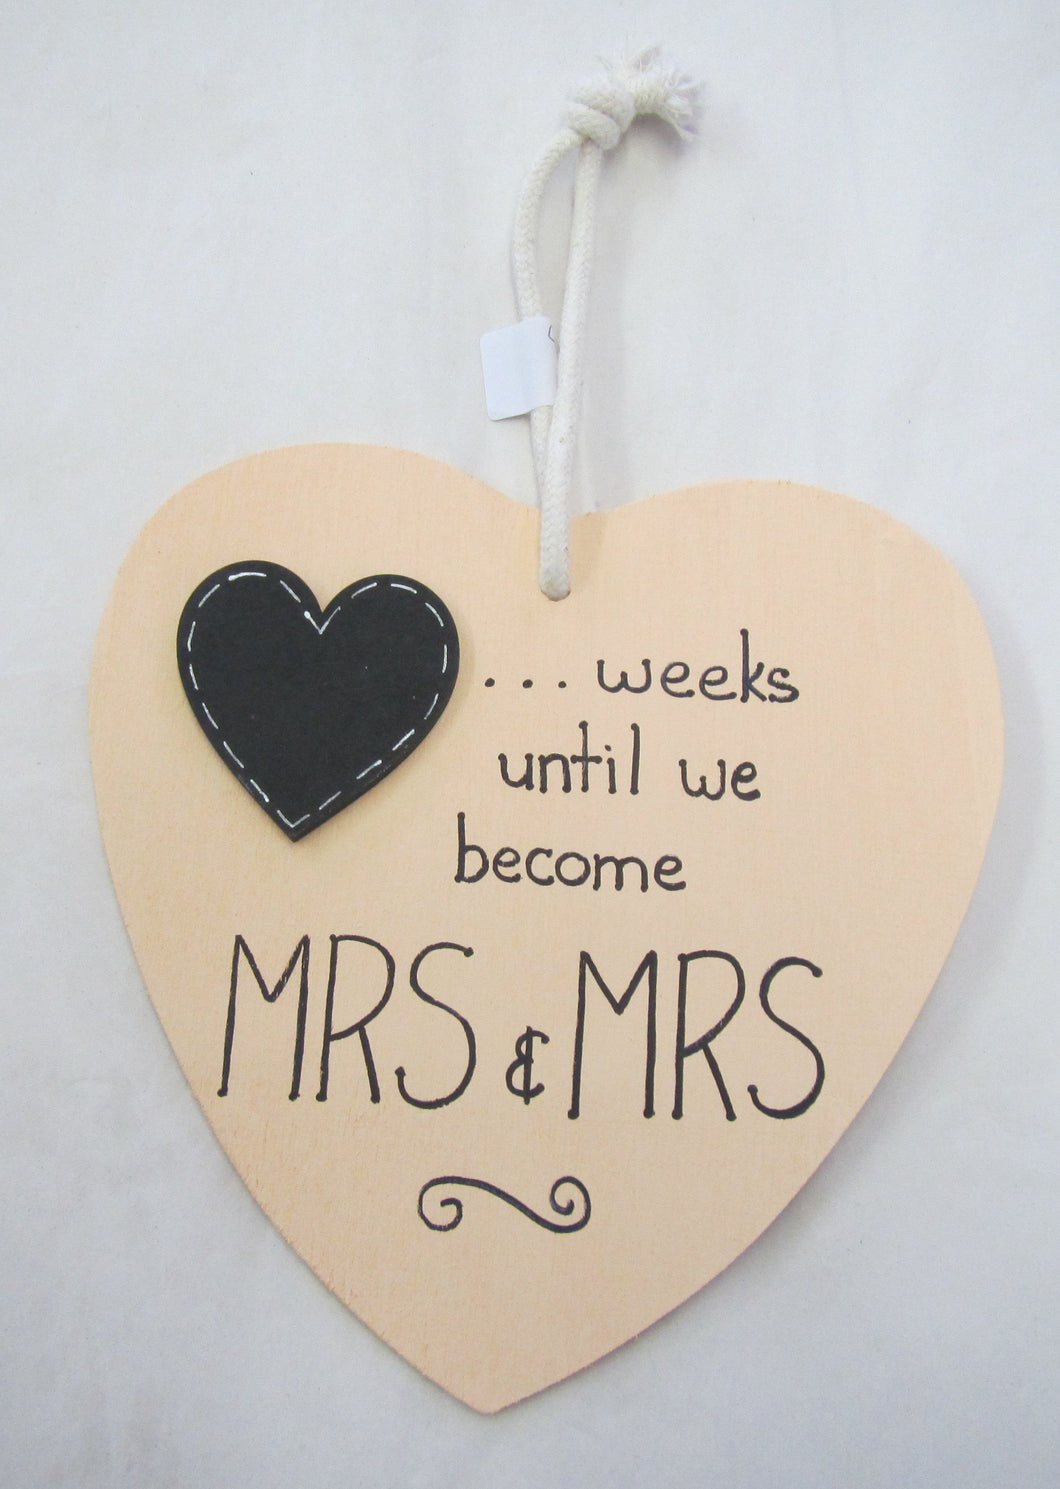 Beautiful handcrafted heart - weeks until we become Mrs & Mrs